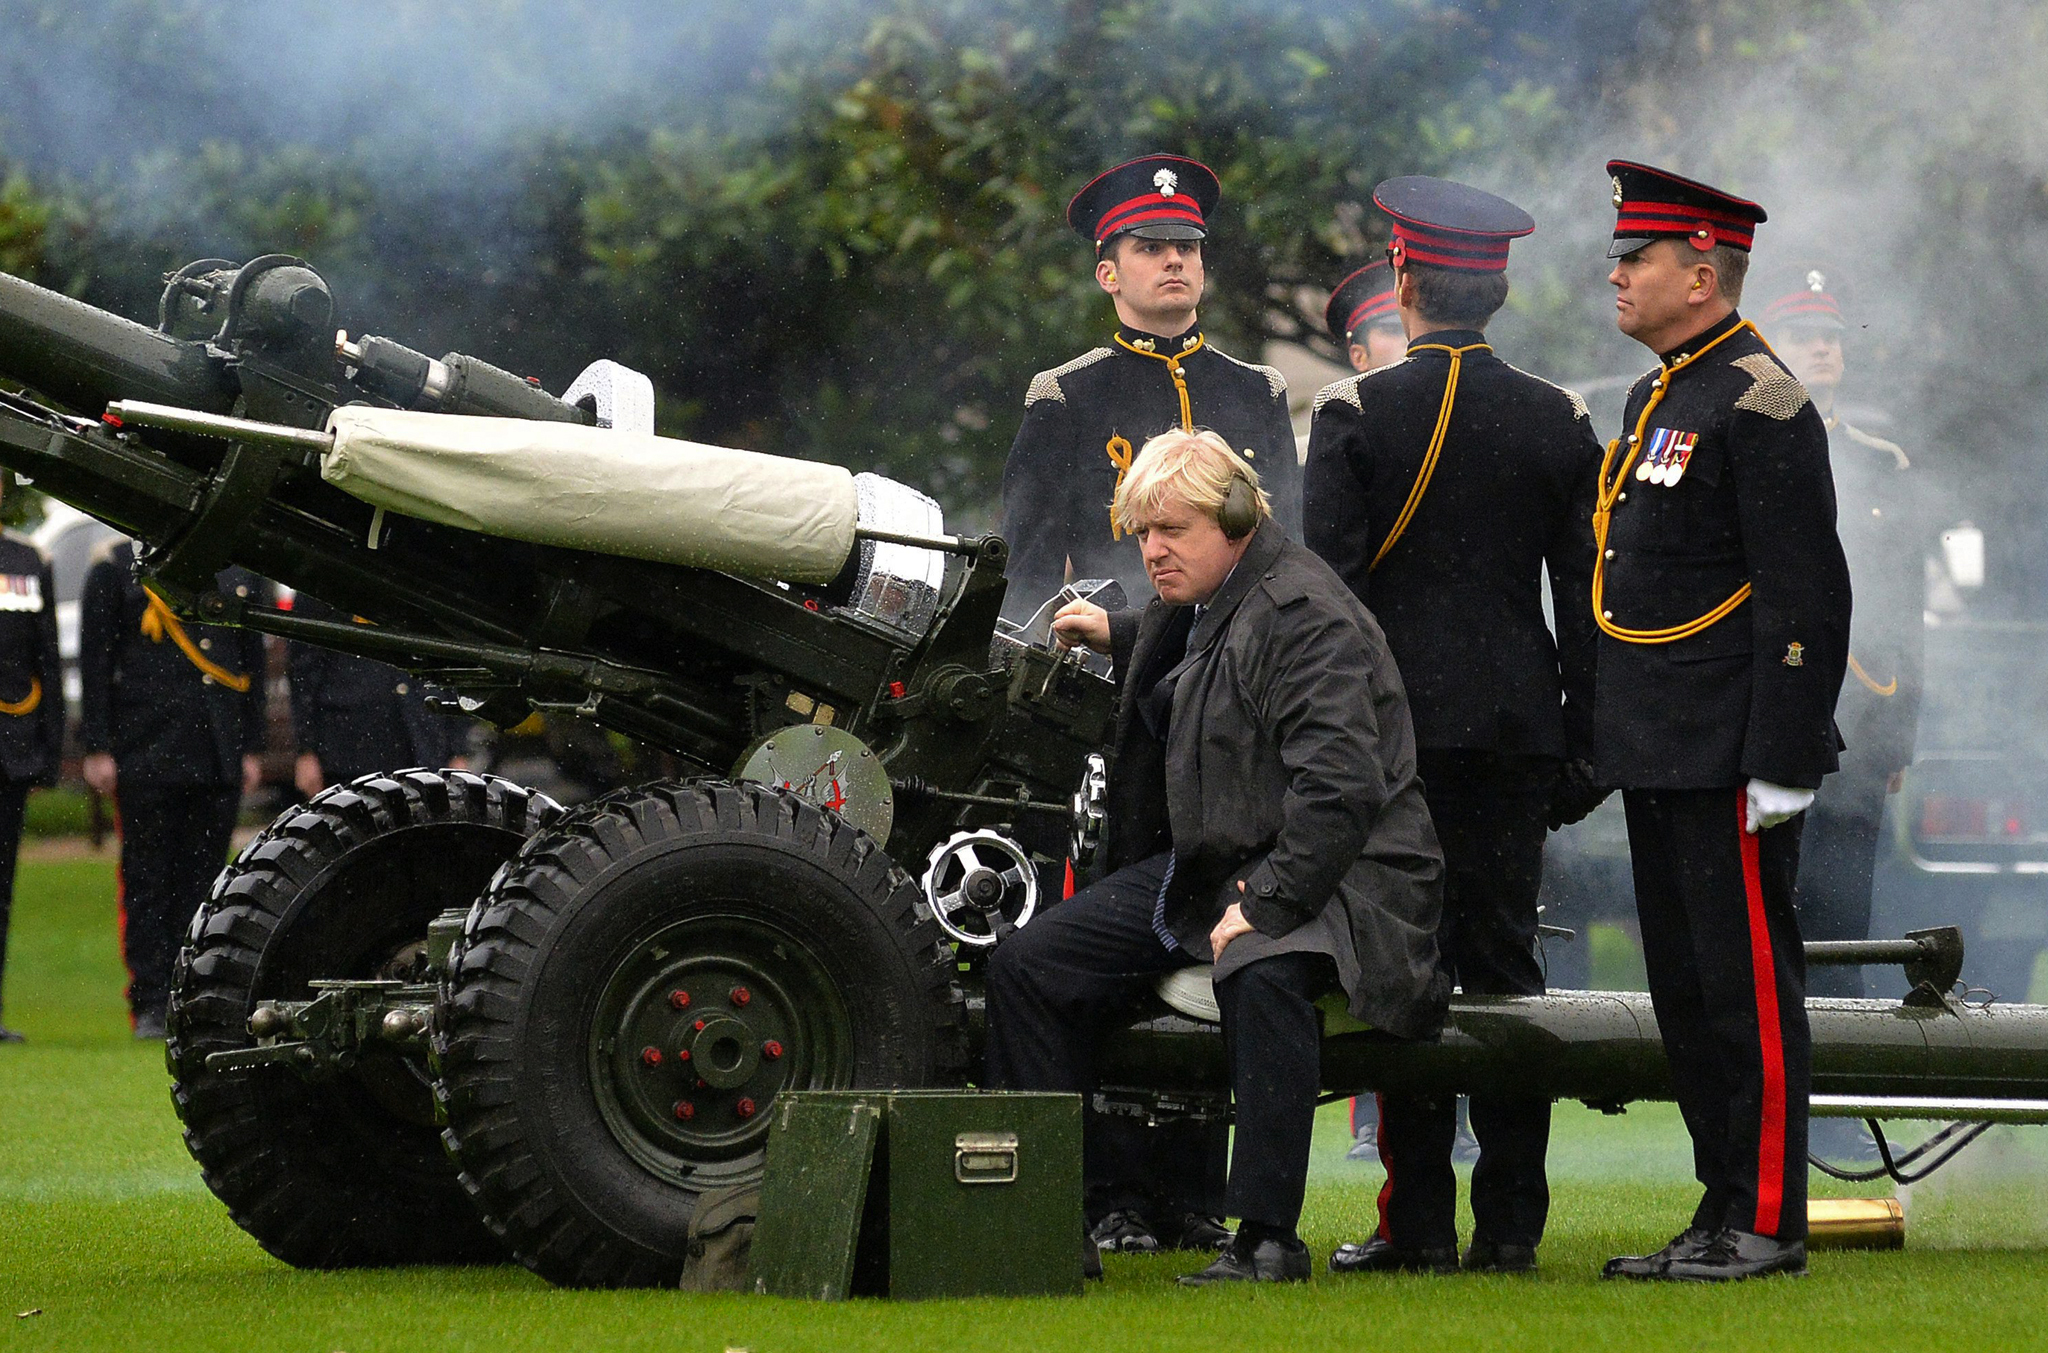 Mayor of London, Boris Johnson firing the salute from the Honourable Artillery Company's 105mm light gun to mark the launch of London Poppy Day at Armoury House, home of the Honourable Artillery Company (HAC), London.,